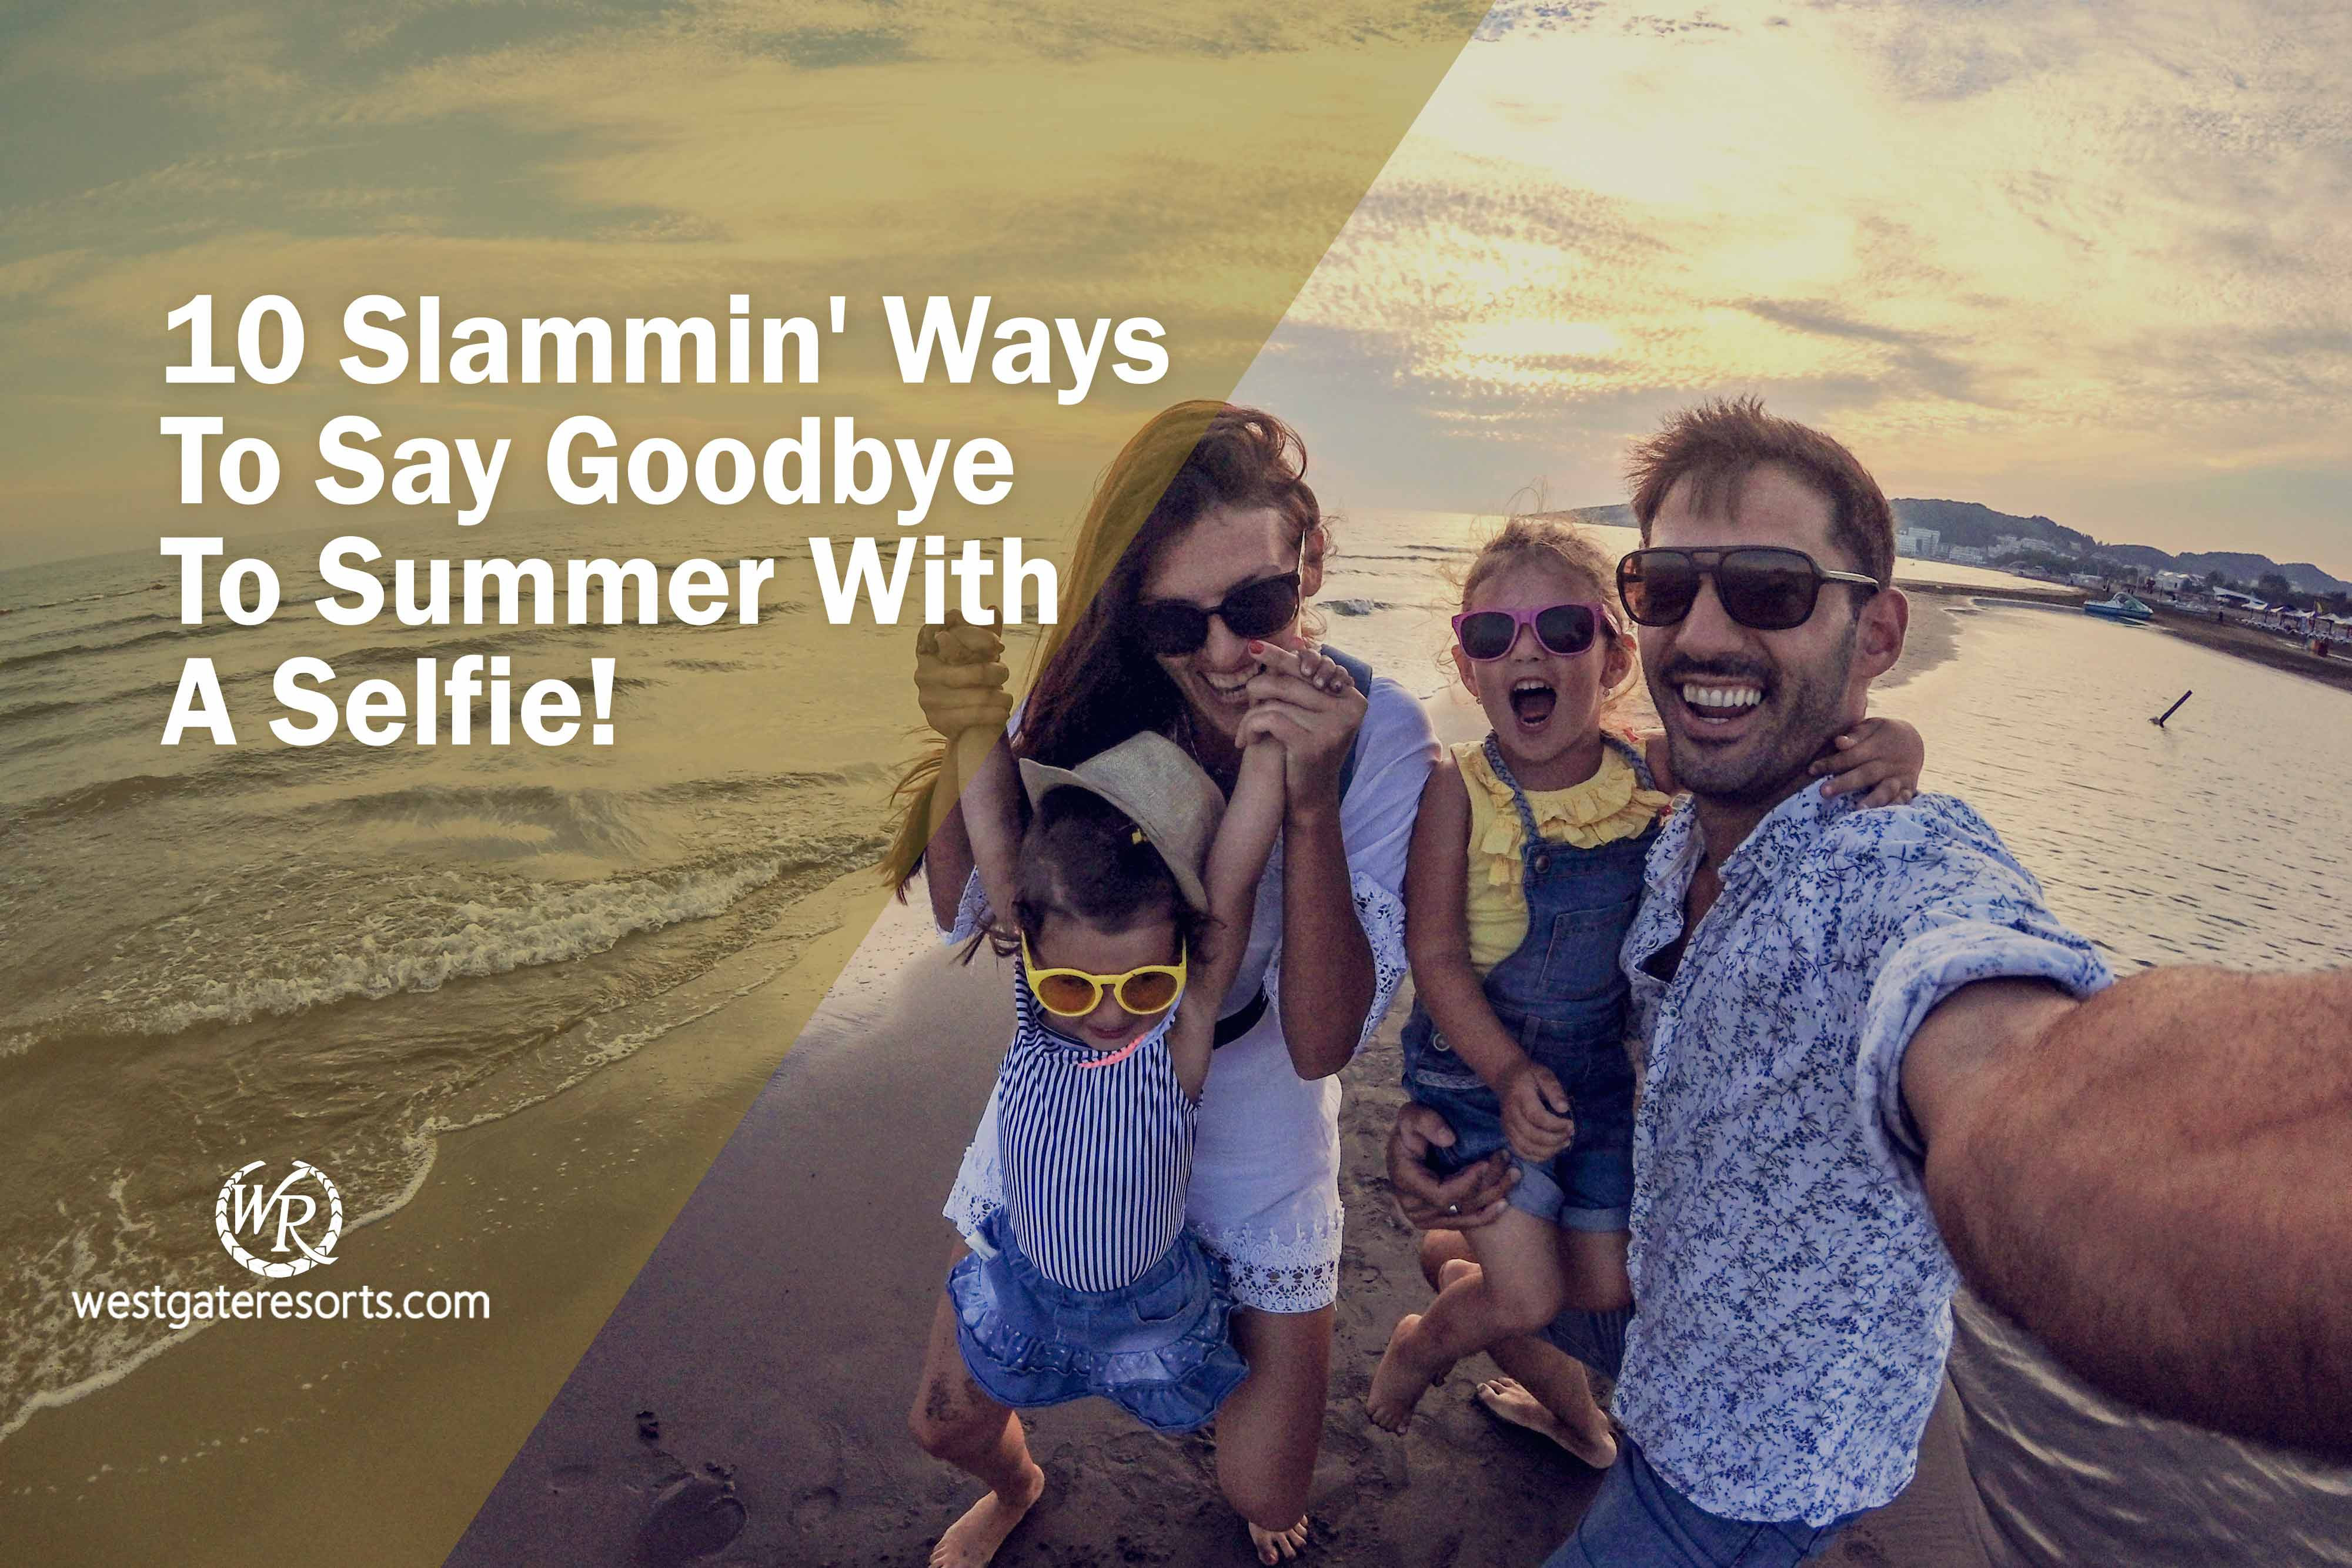 Summer Selfie Captions | 10 Ways To Say Goodbye To Summer With A Selfie